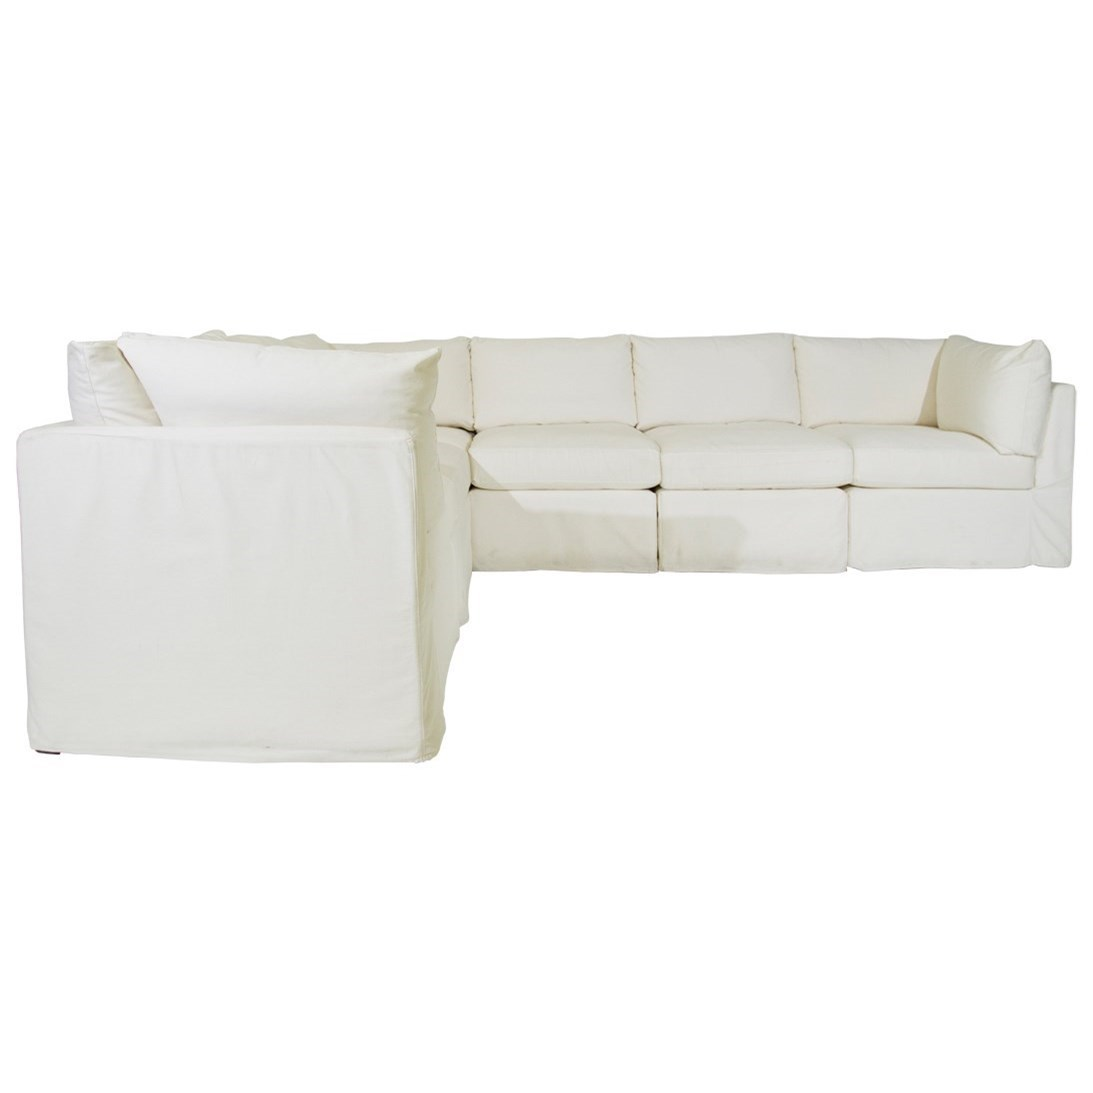 McCreary Modern 1058Slipcover Sectional; McCreary Modern 1058Slipcover  Sectional